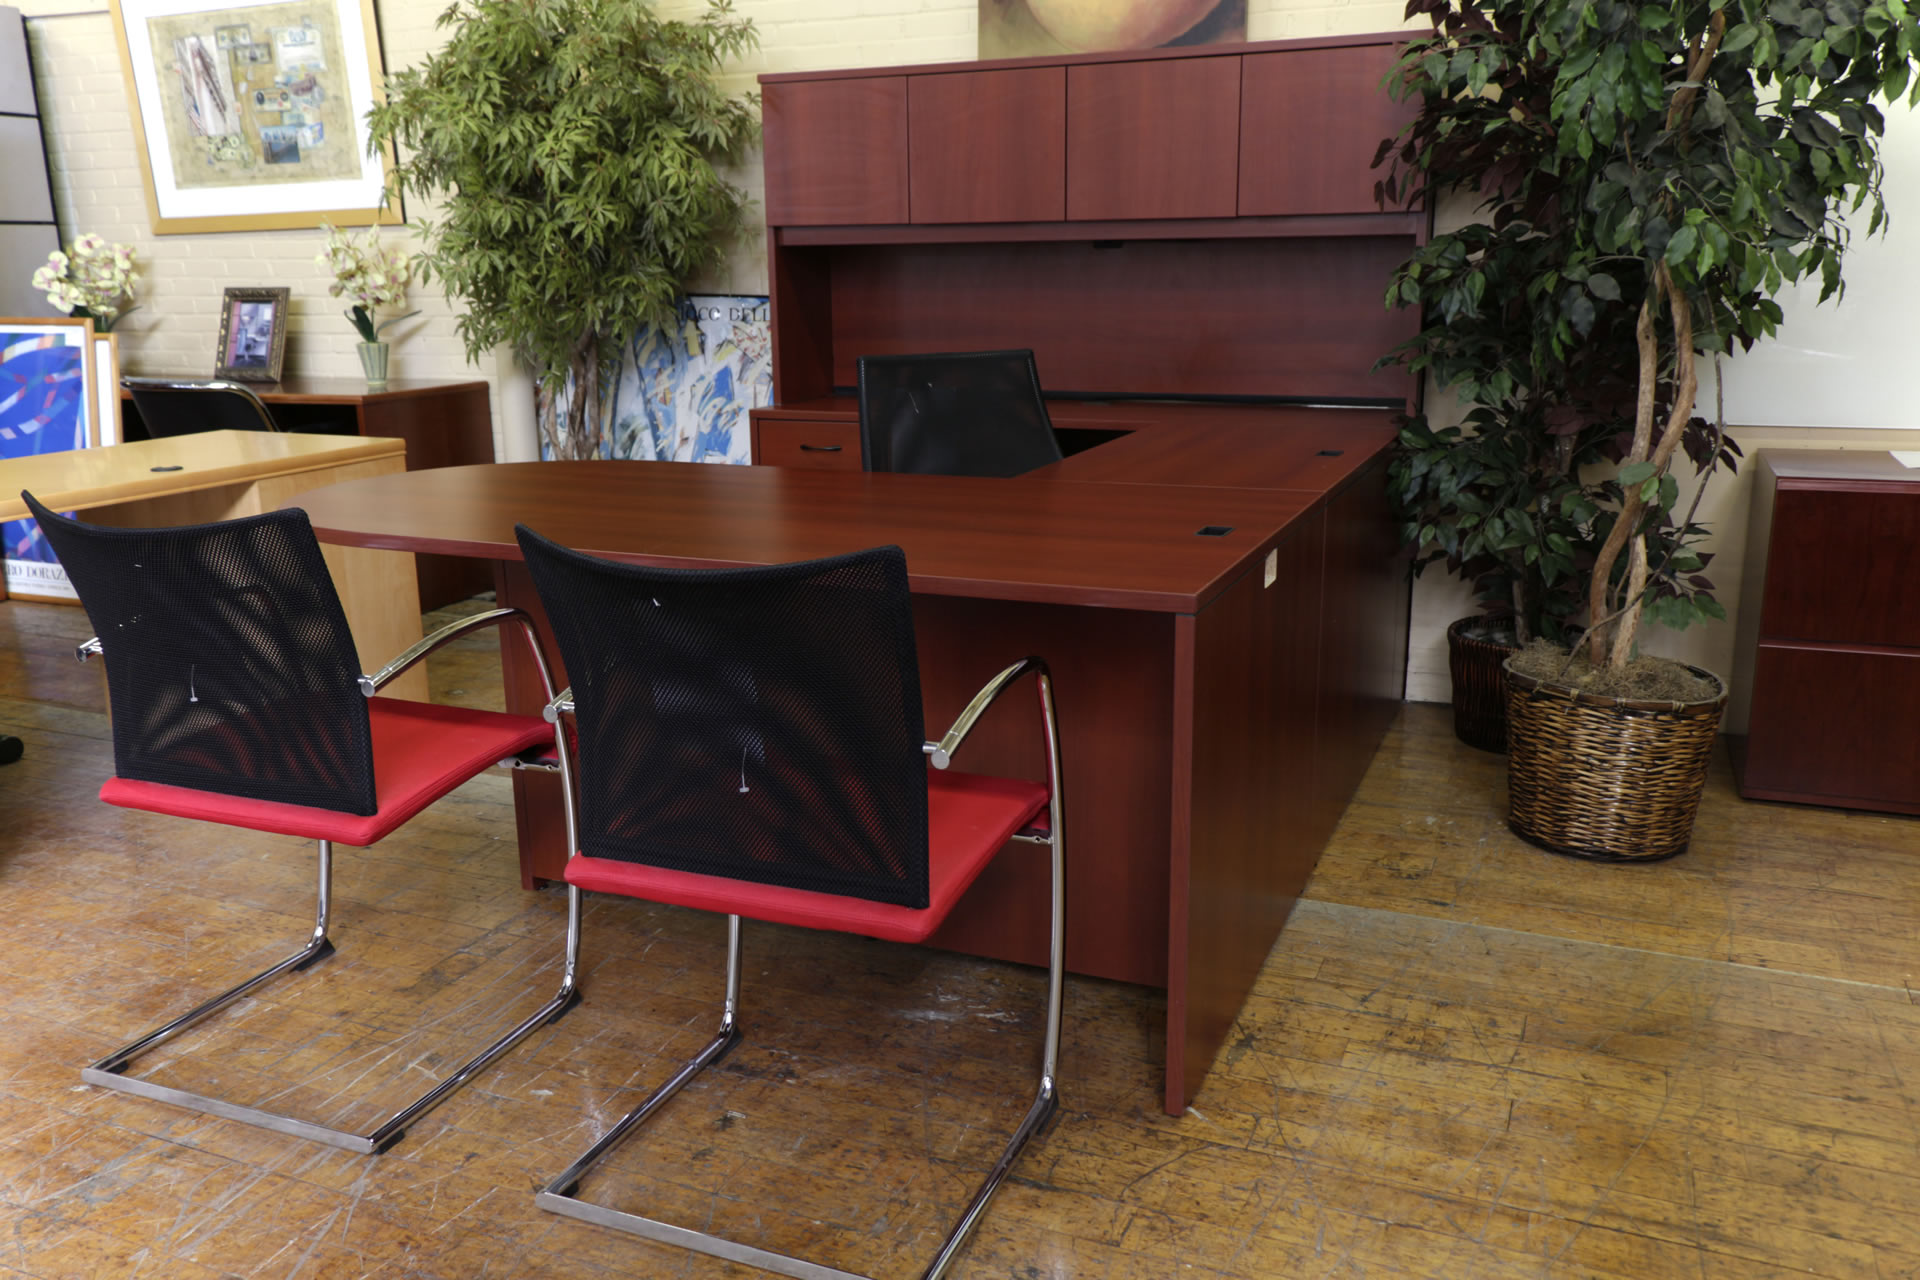 peartreeofficefurniture_peartreeofficefurniture_mg_5298.jpg